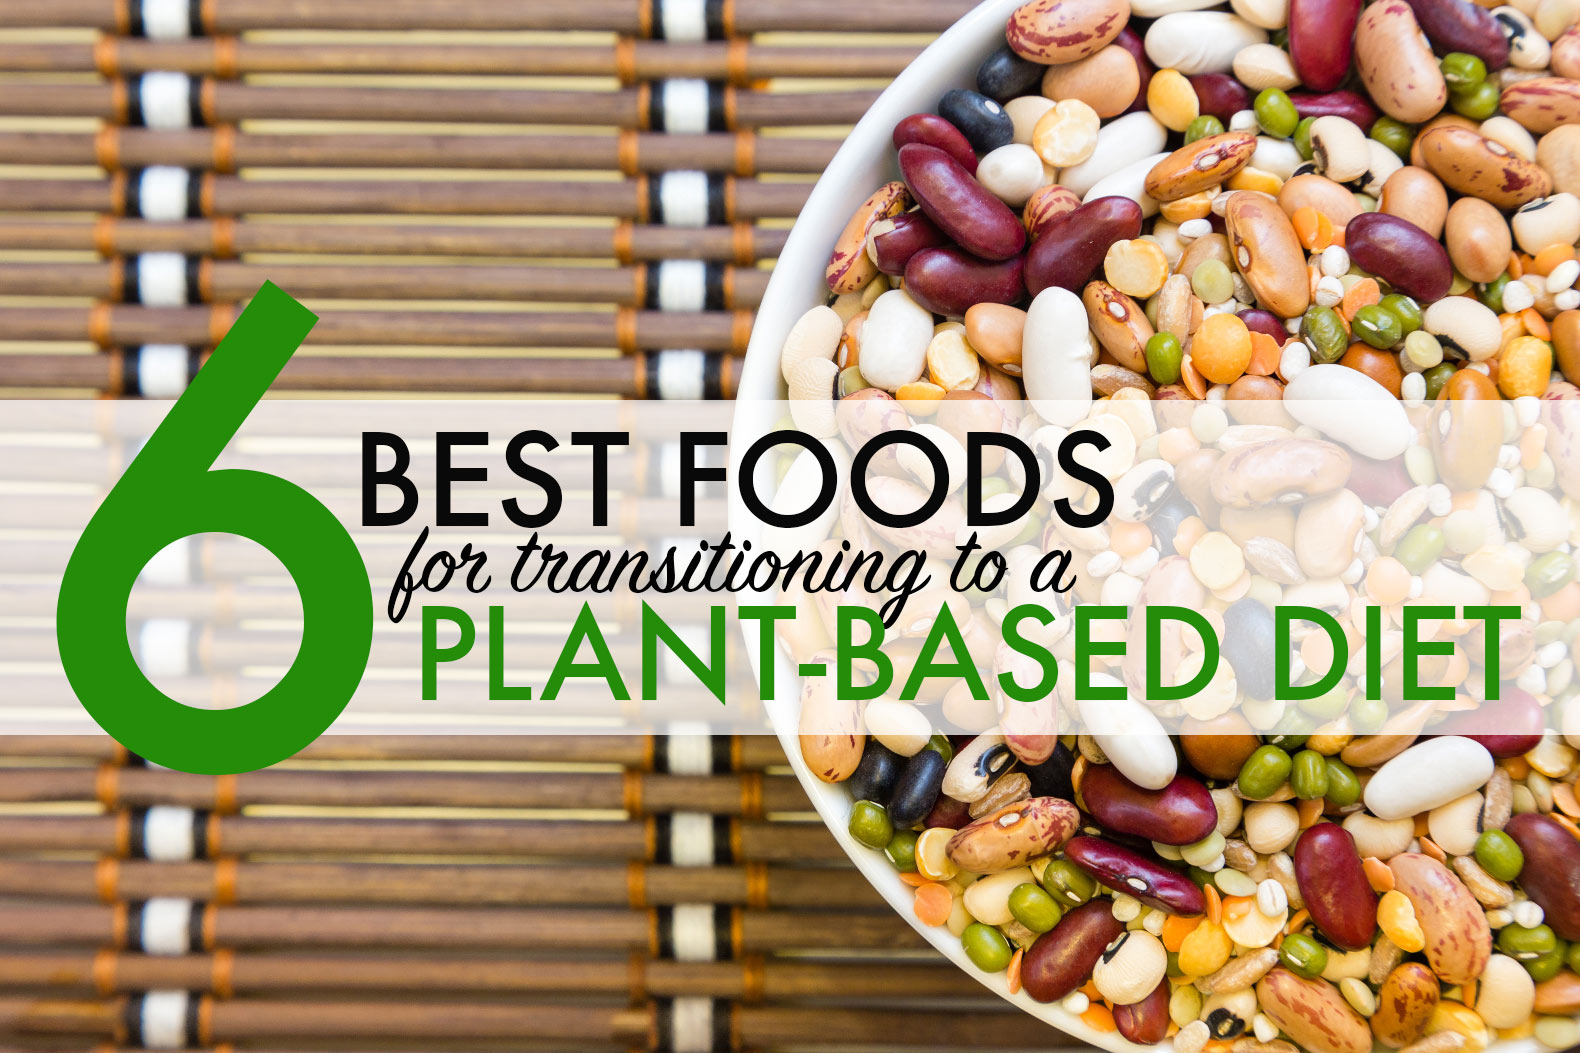 6 Foods to help you transition to a plant-based diet